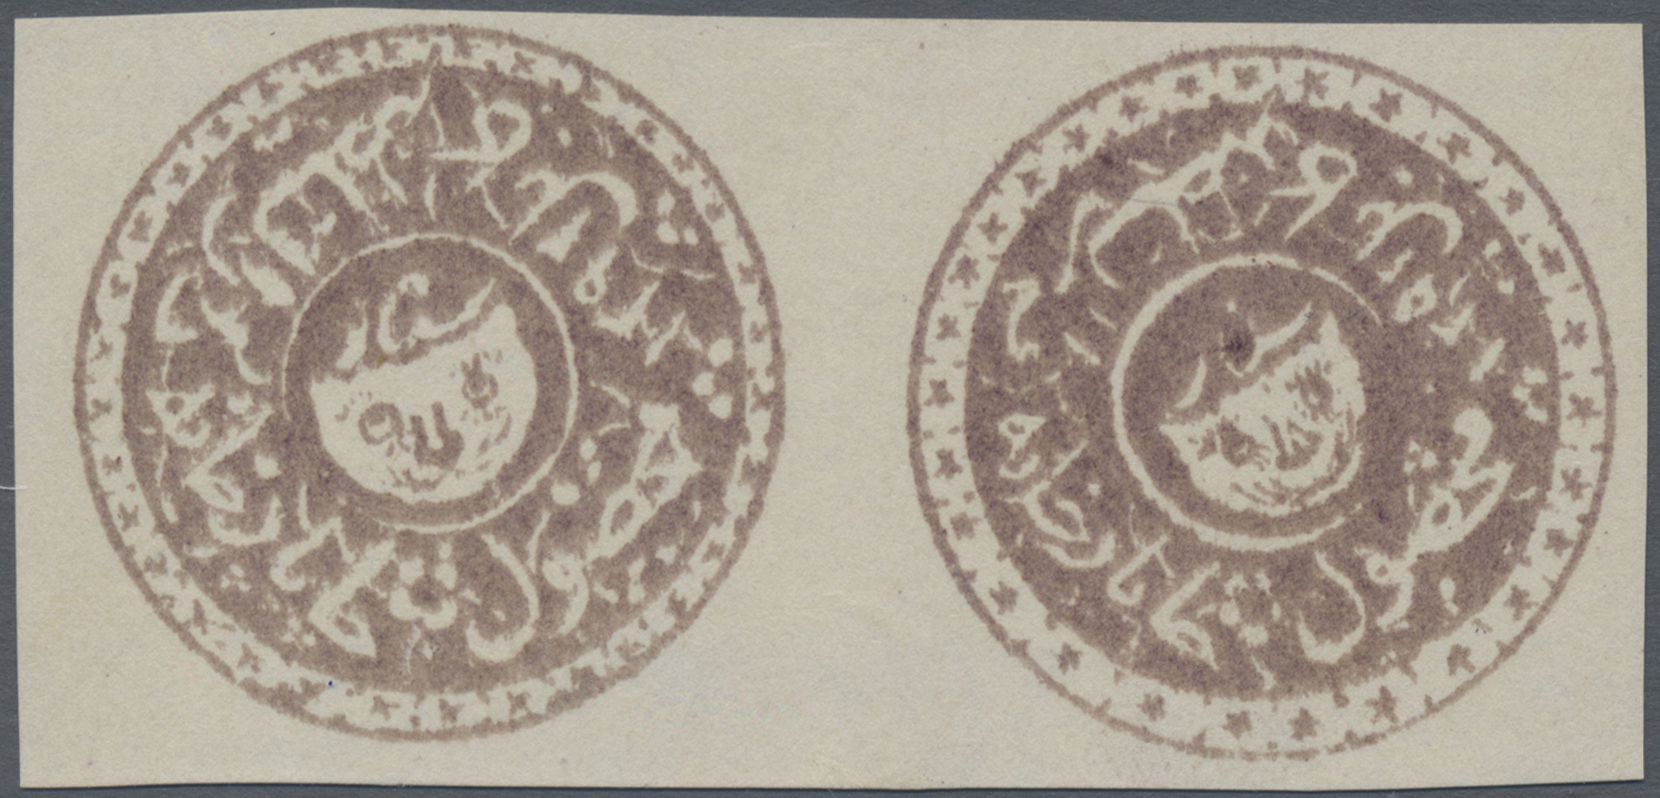 Lot 02015 - Afghanistan  -  Auktionshaus Christoph Gärtner GmbH & Co. KG 51th Auction - Day 2